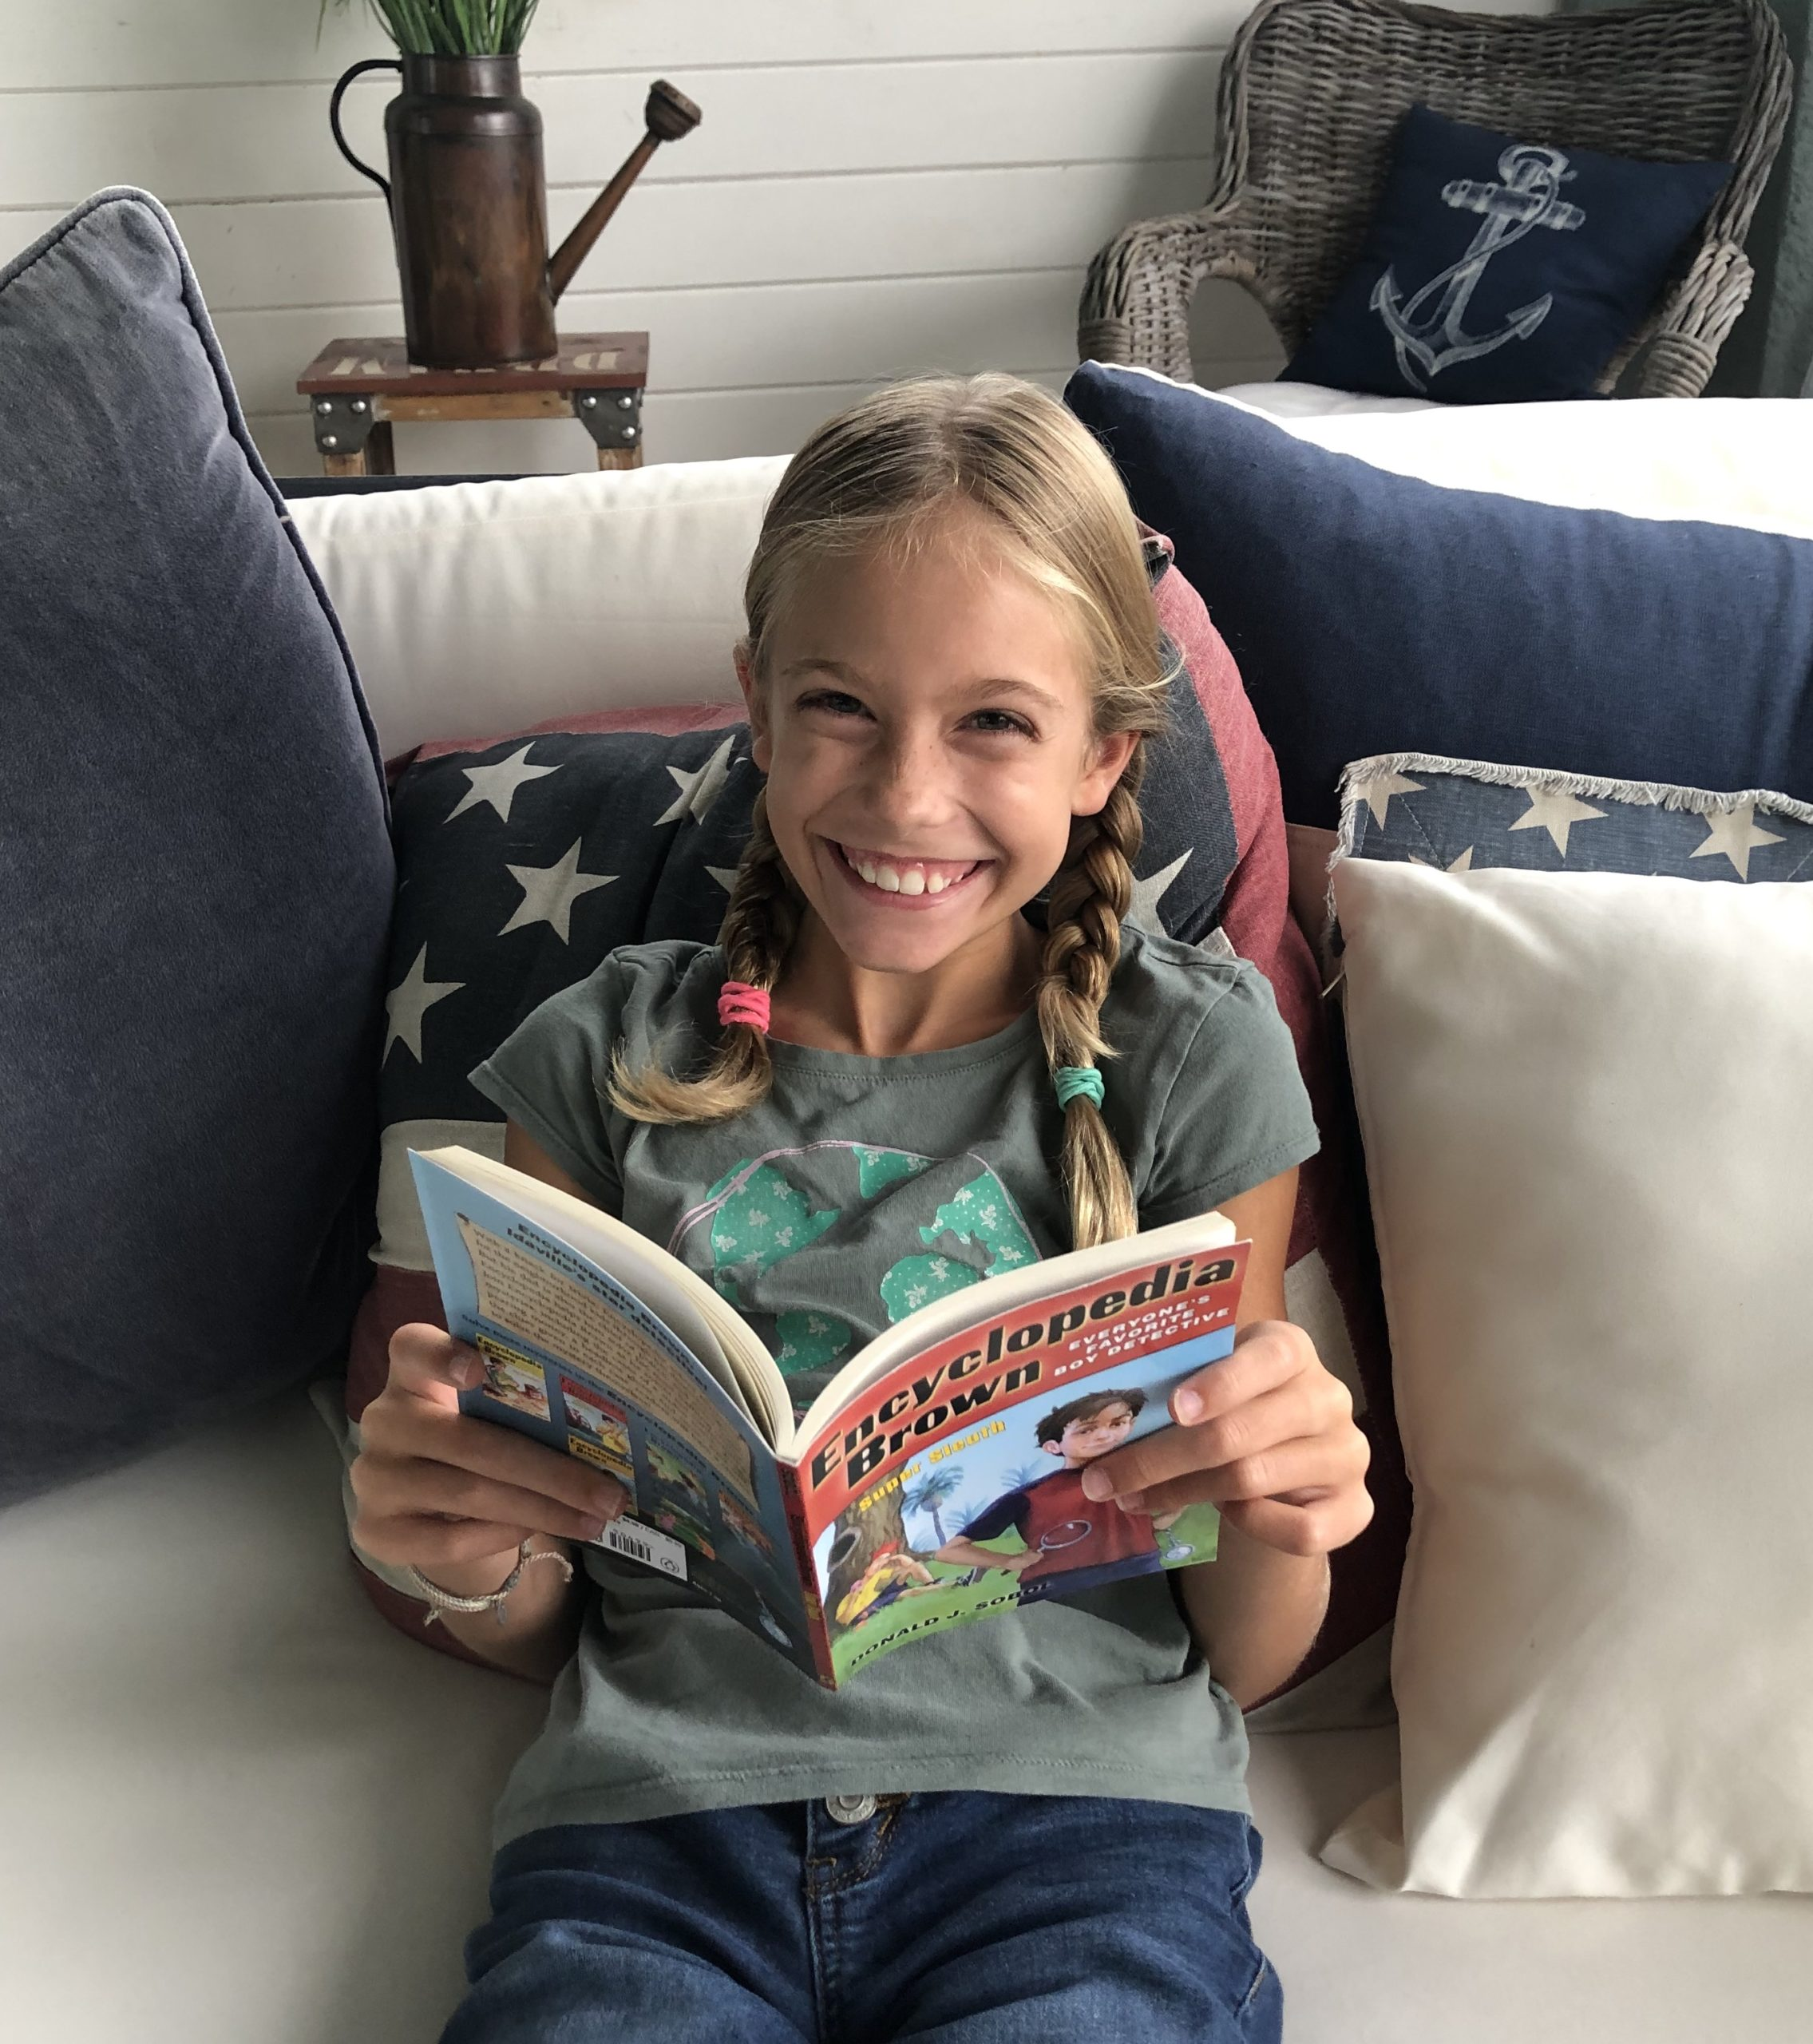 Blonde Brecken smiling and reading Encyclopedia Brown's Super Sleuth book.